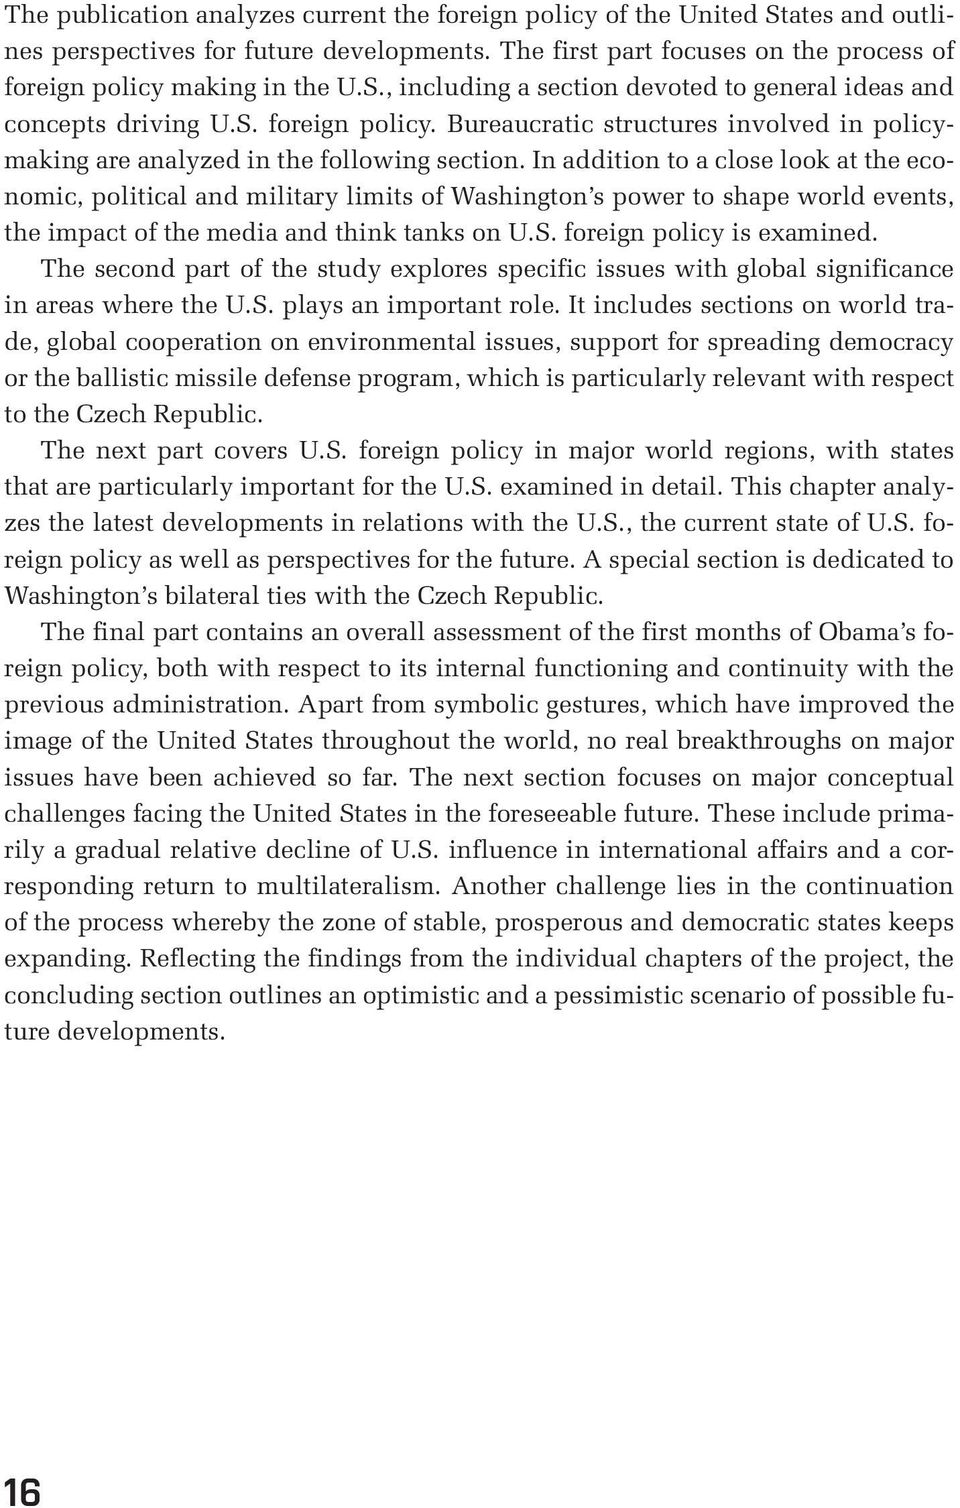 In addition to a close look at the economic, political and military limits of Washington s power to shape world events, the impact of the media and think tanks on U.S. foreign policy is examined.